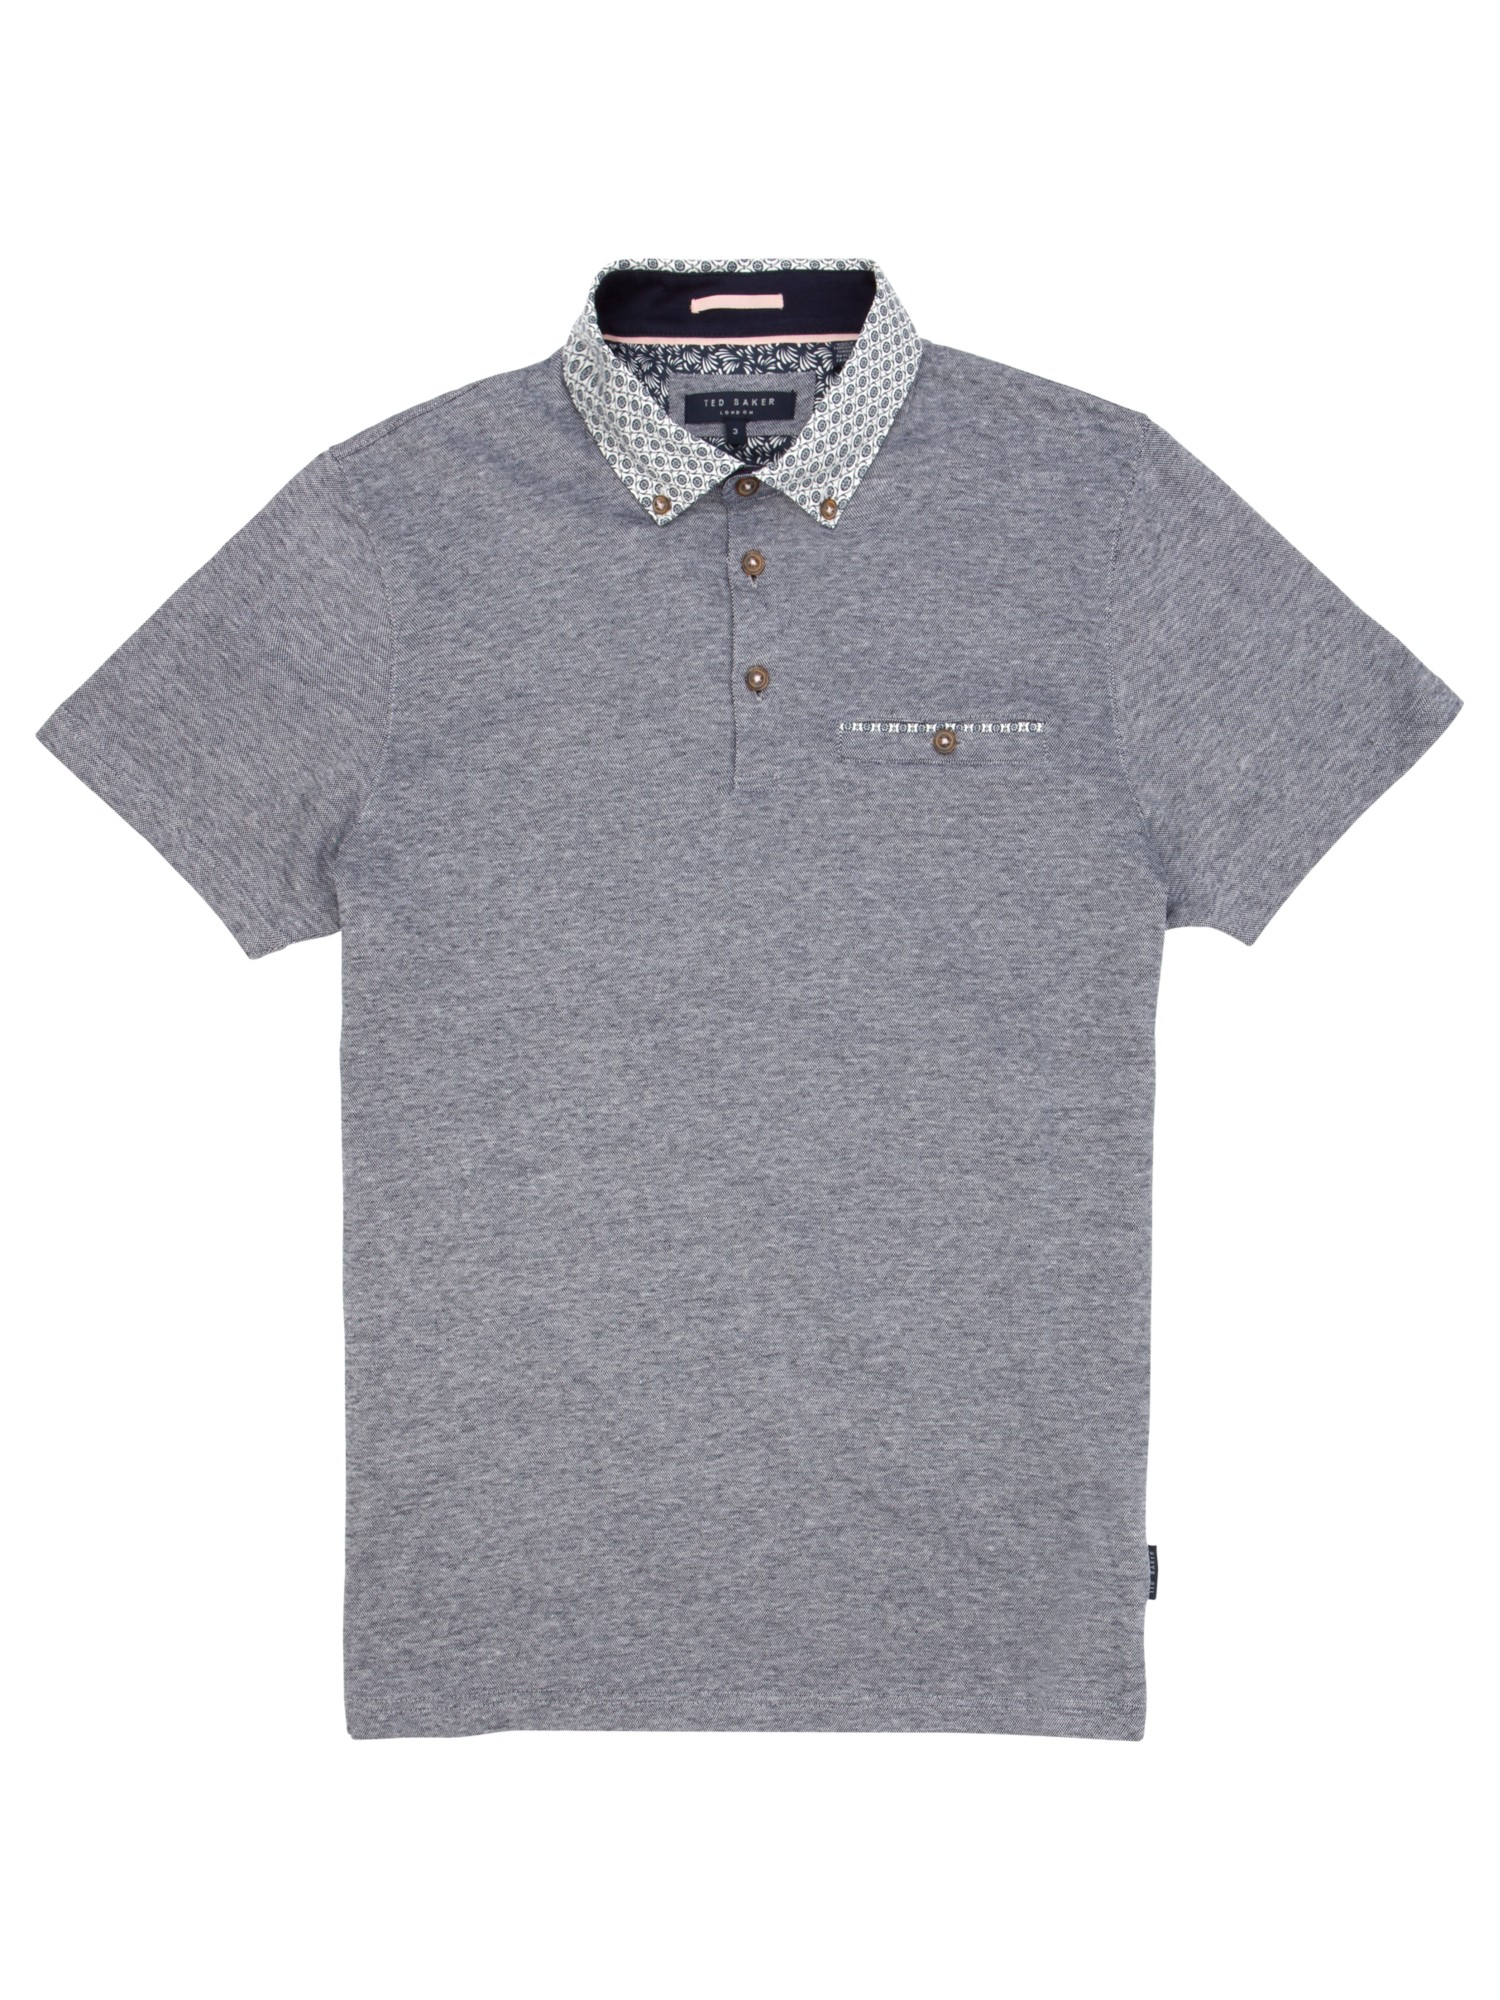 64f8e3d0bd272 Ted Baker Delrey Printed Collar Polo Shirt in Blue for Men - Lyst